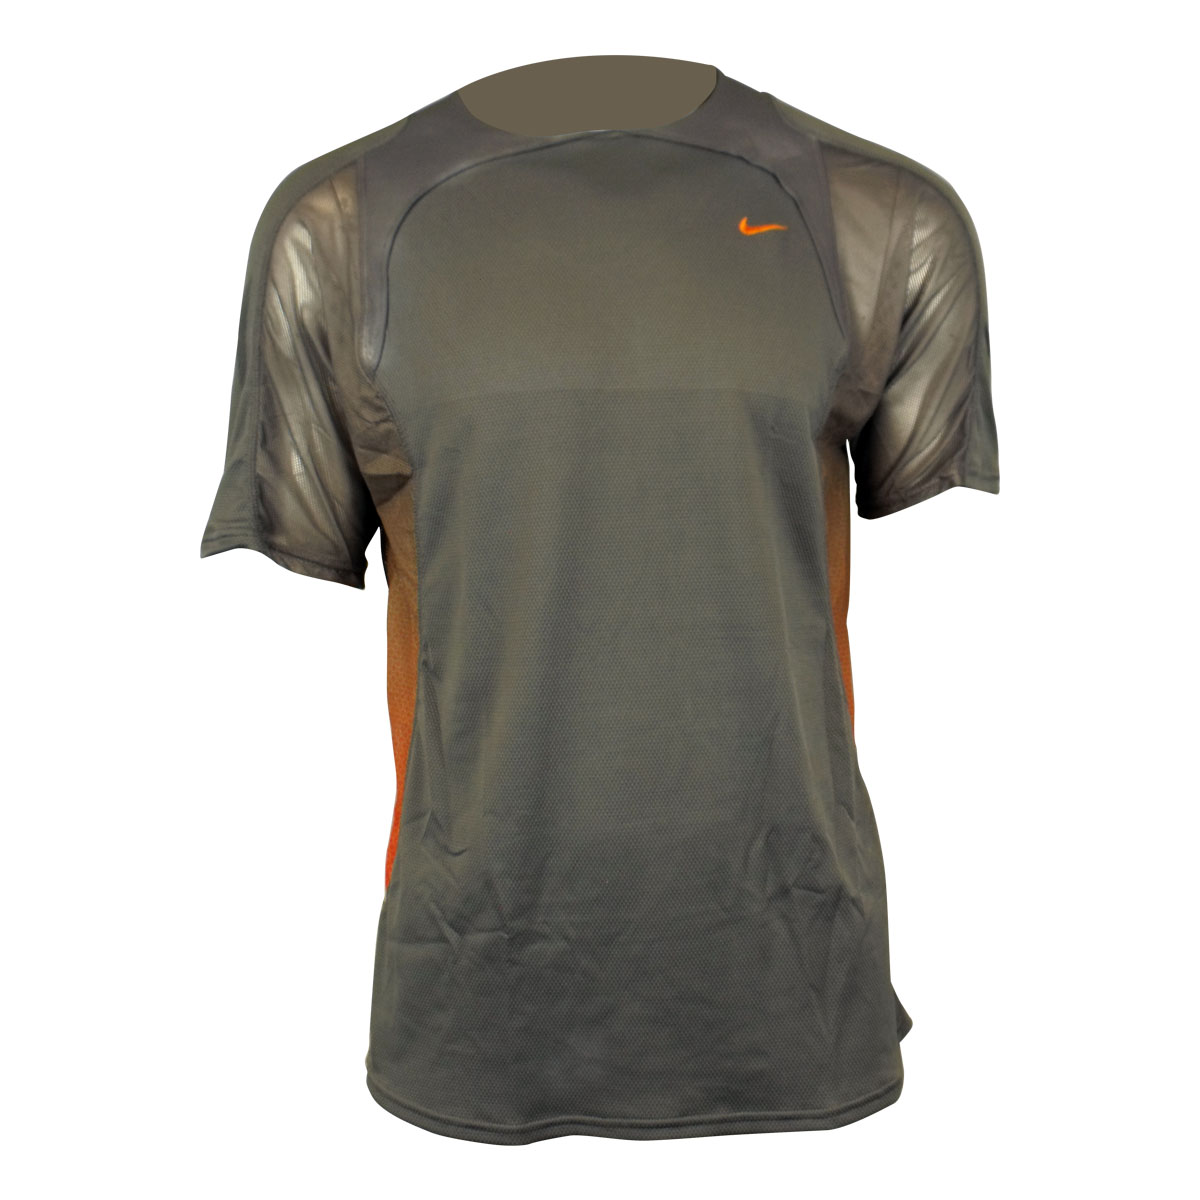 Mens nike sphere dry dri fit running shirt top t shirt gym for Best athletic dress shirts